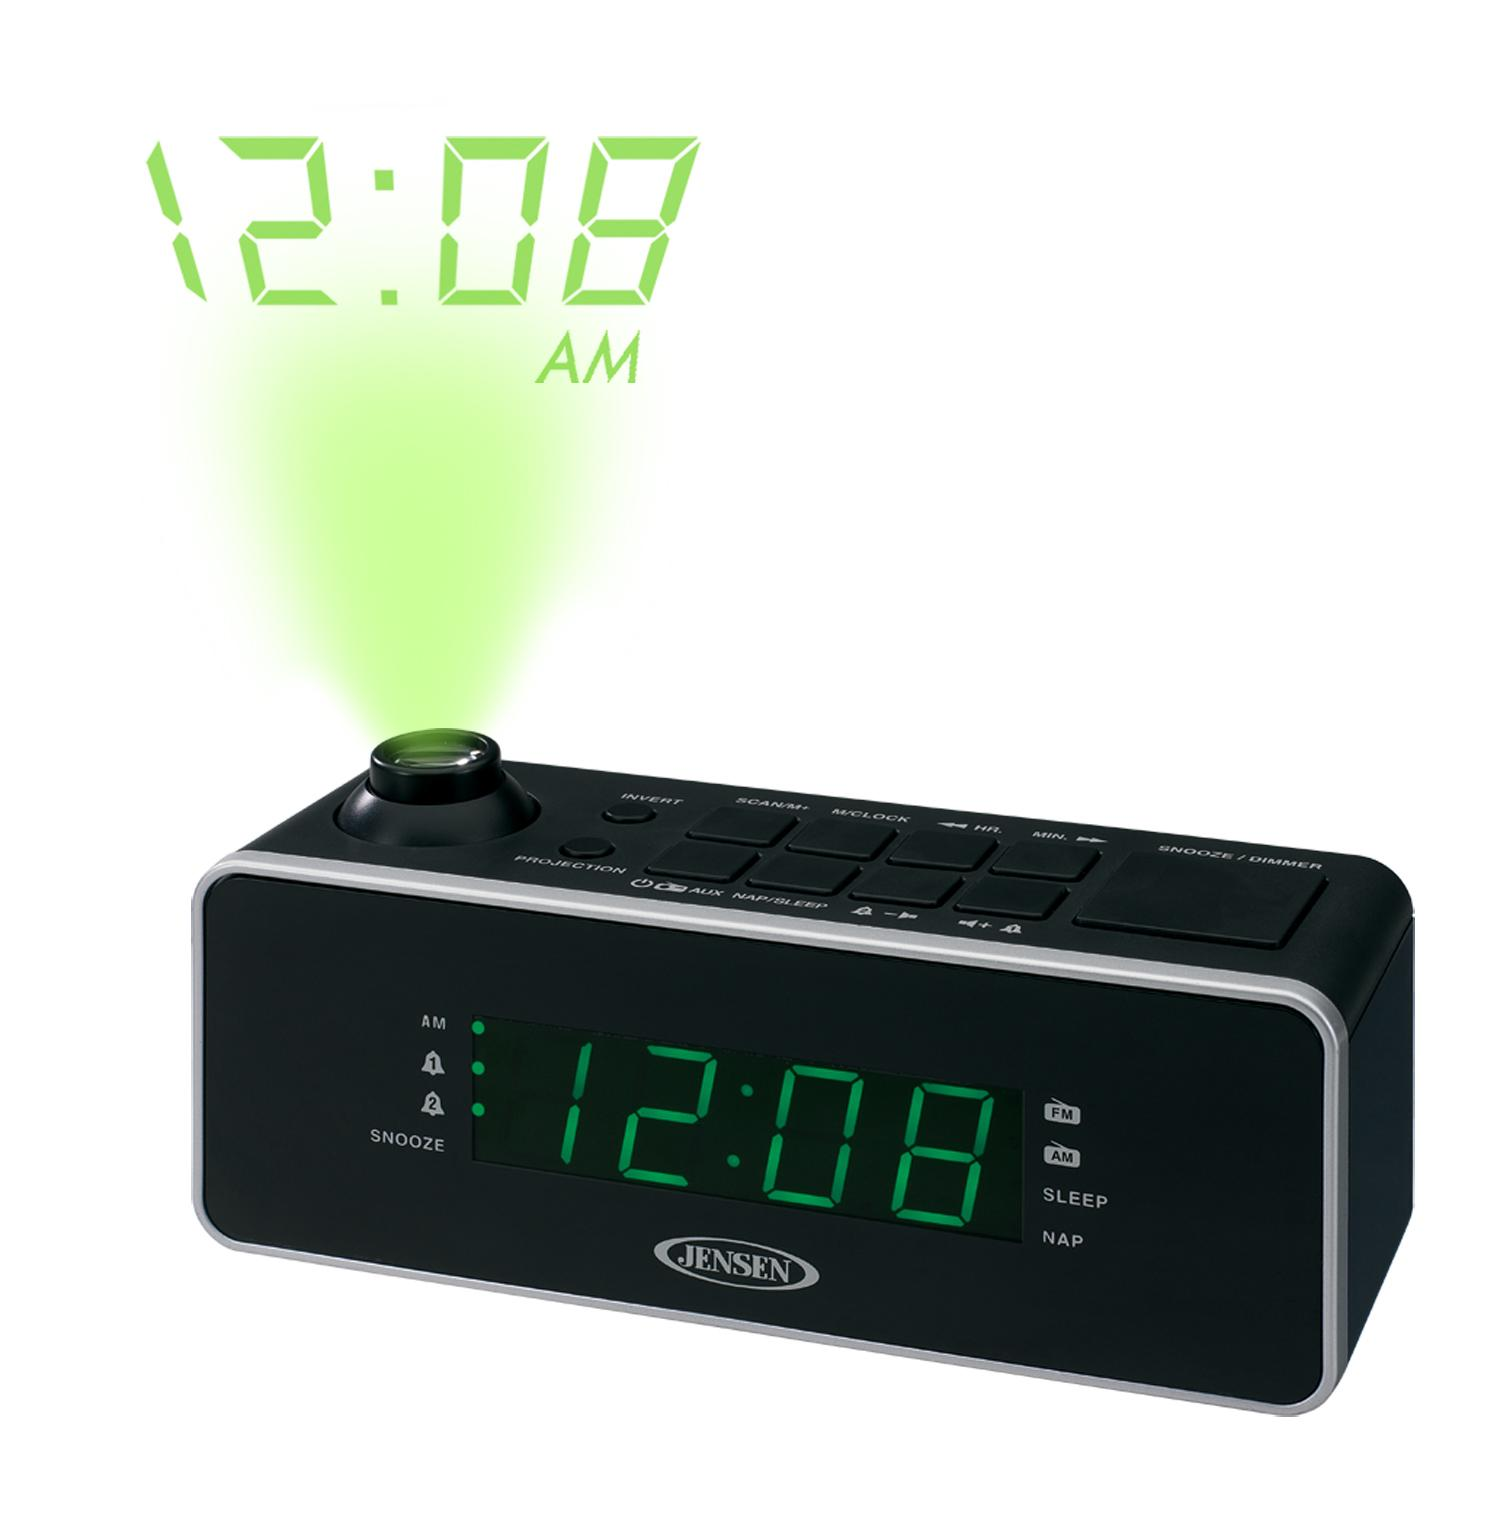 jensen jcr 235 dual alarm projection clock radio home audio theater. Black Bedroom Furniture Sets. Home Design Ideas